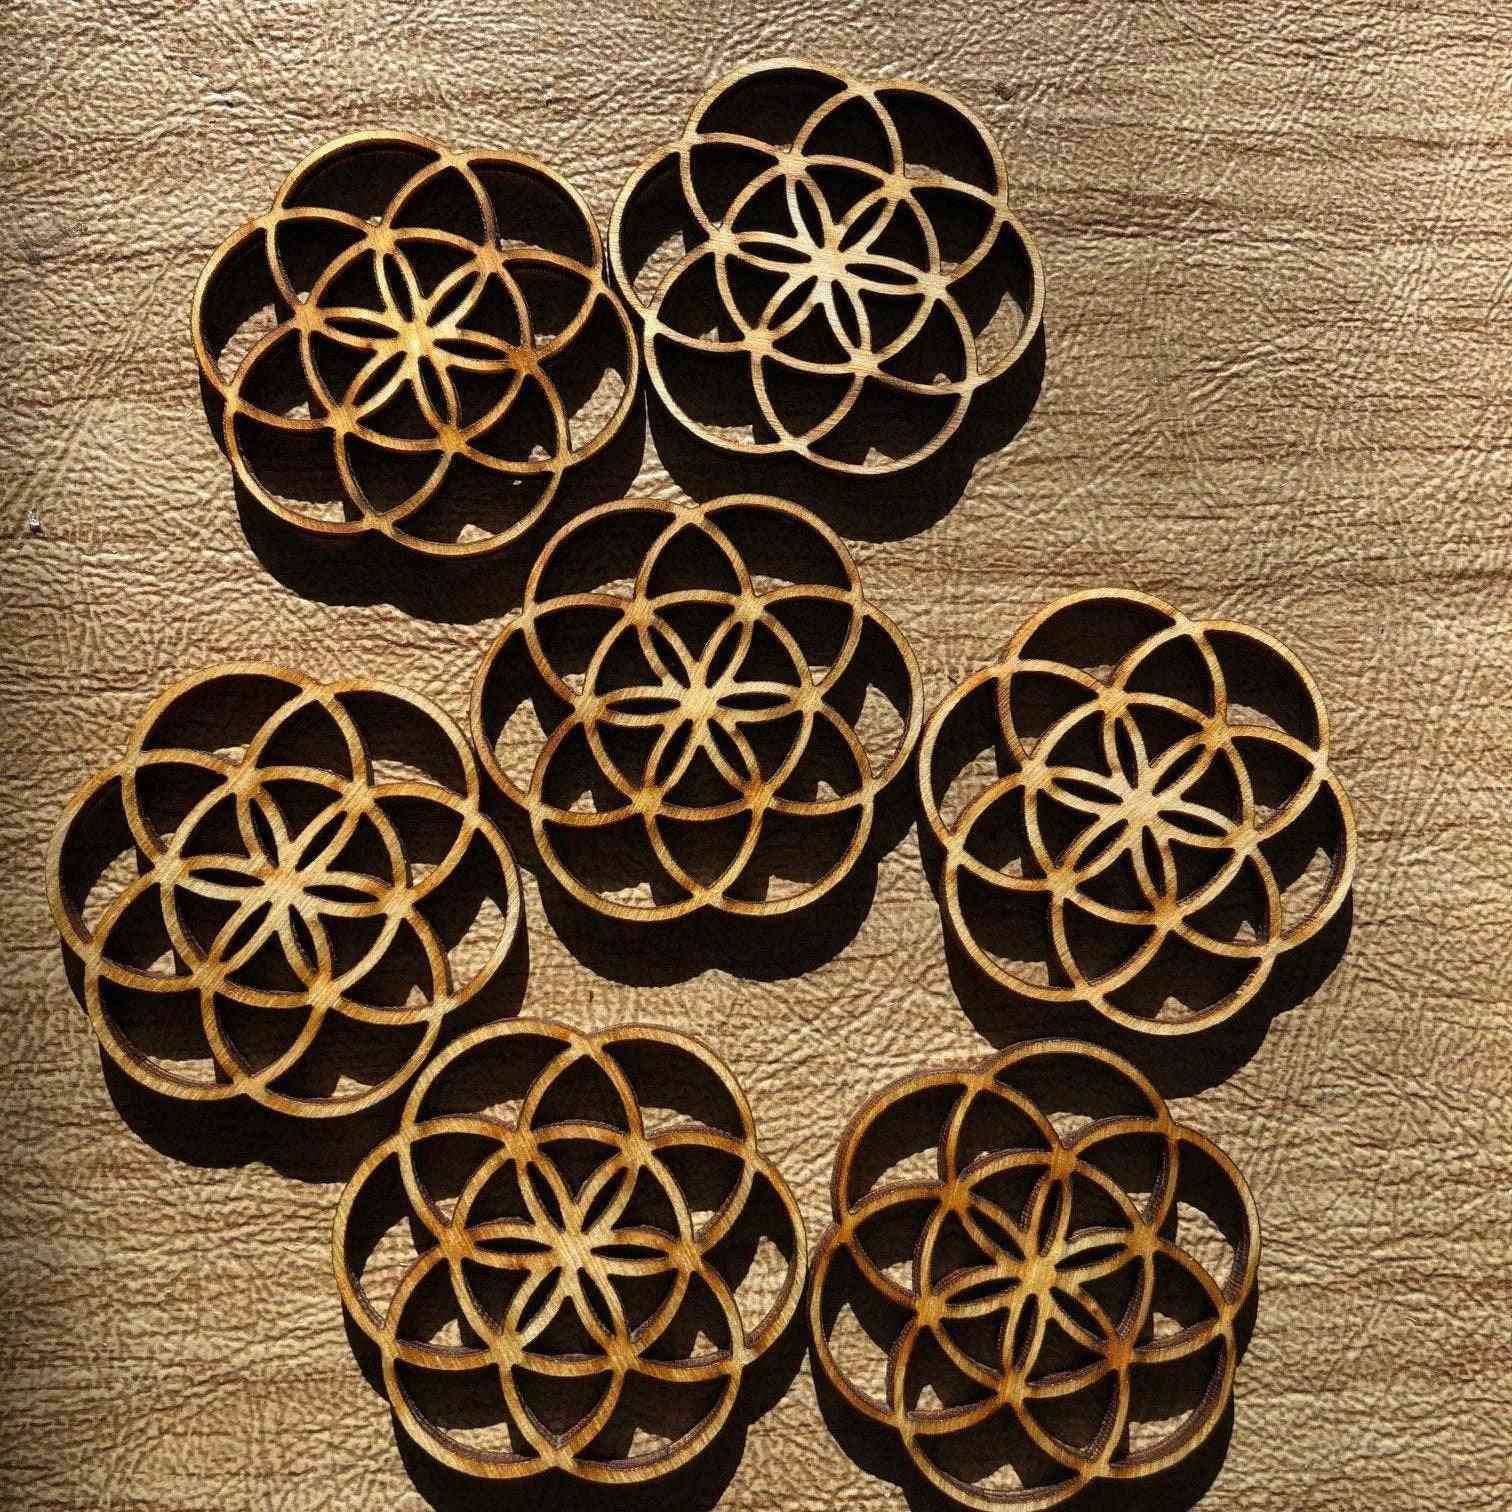 Flower Of Life - Wooden Beads To Make Earrings, Pendants, Art Pieces